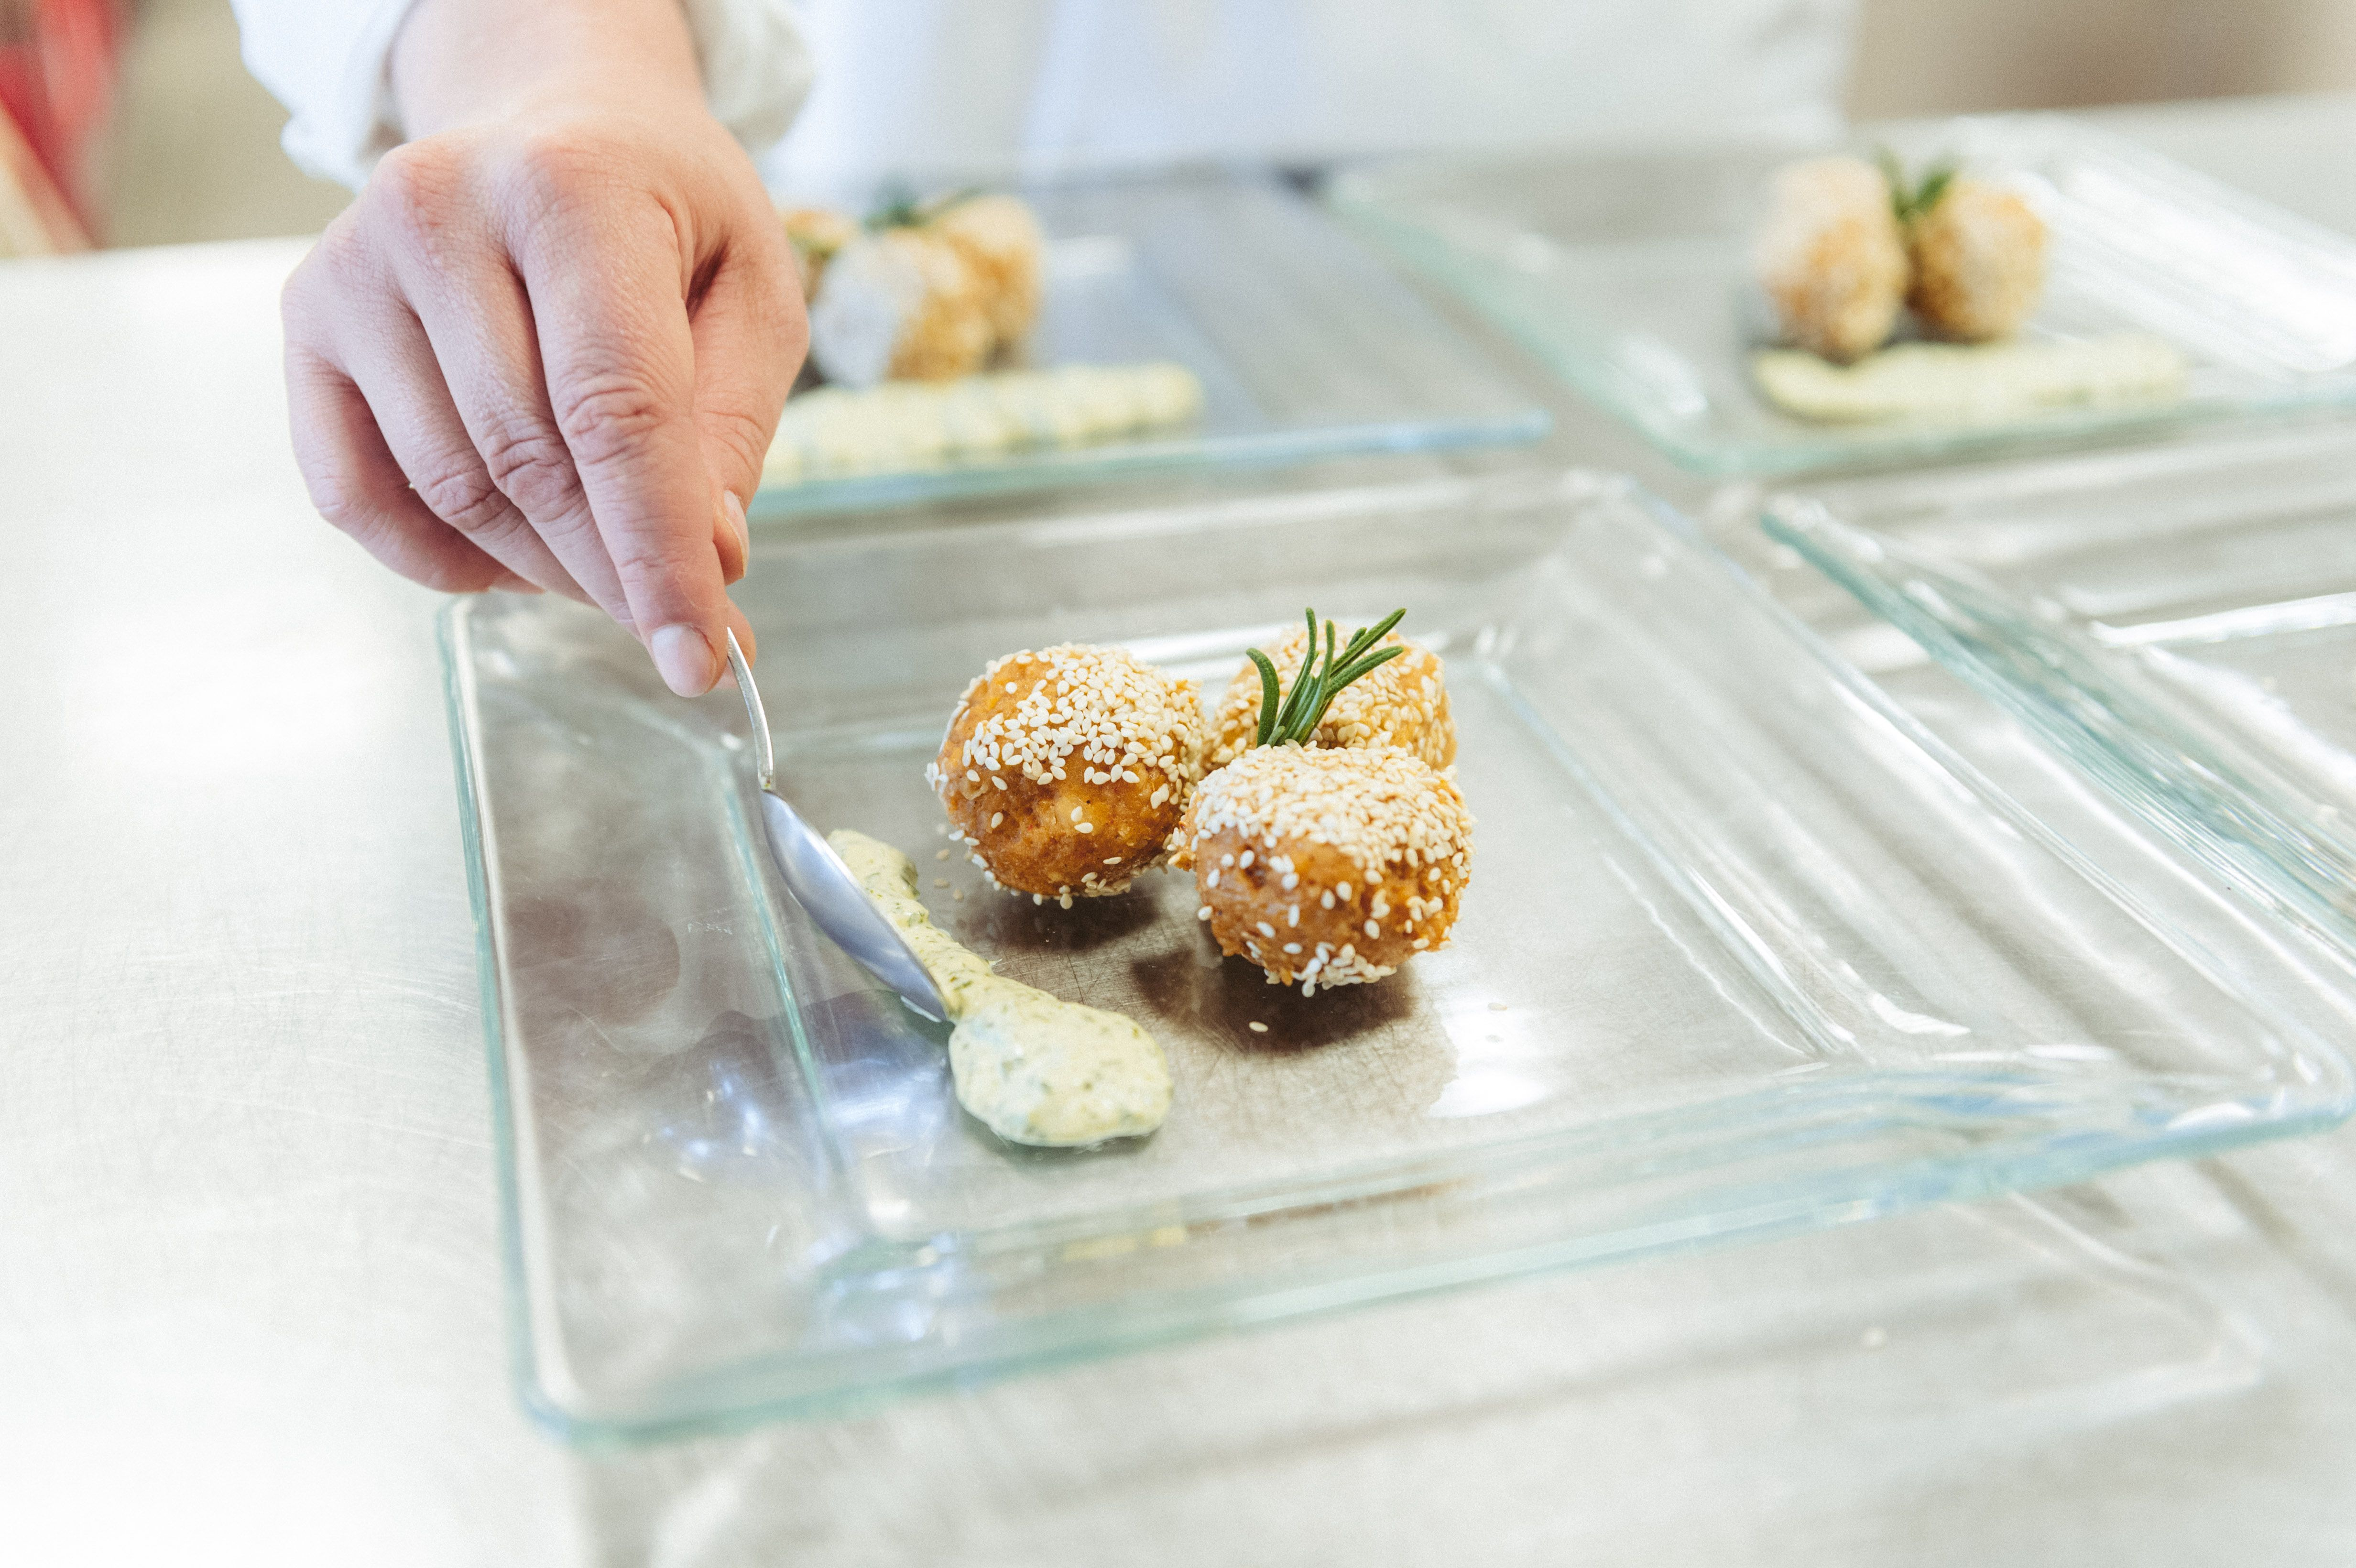 Roth Catering & Events in Niedersachsen